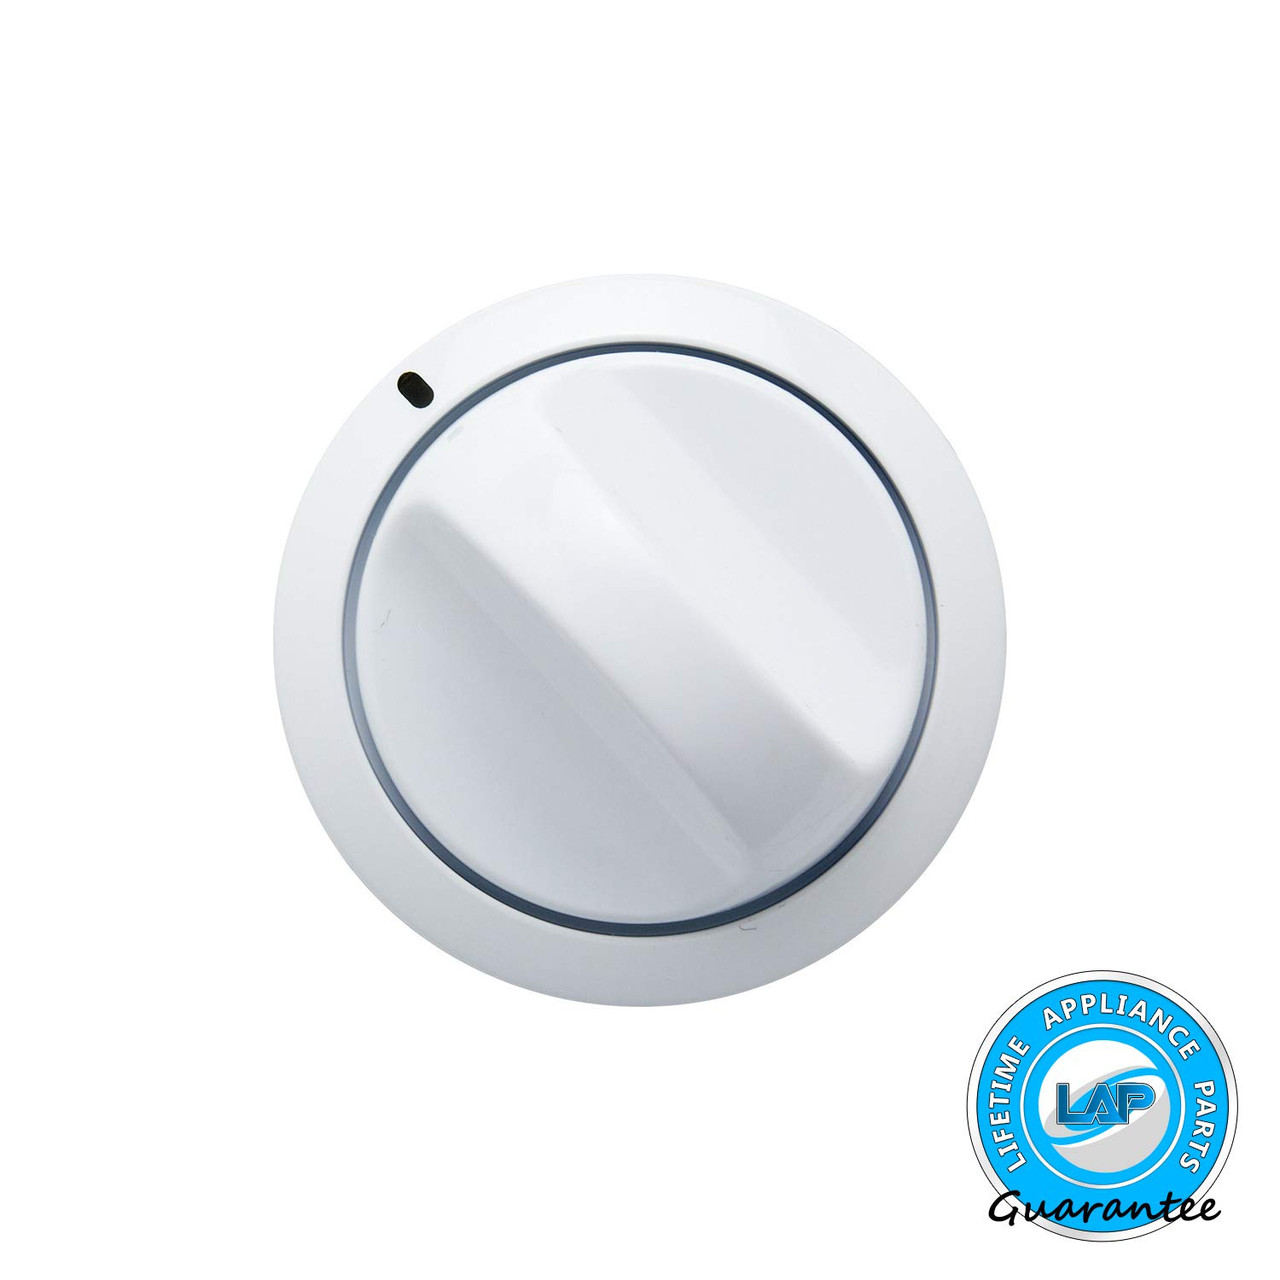 131873304 Timer Knob Compatible with Frigidaire Dryer - 1318733, 131167804